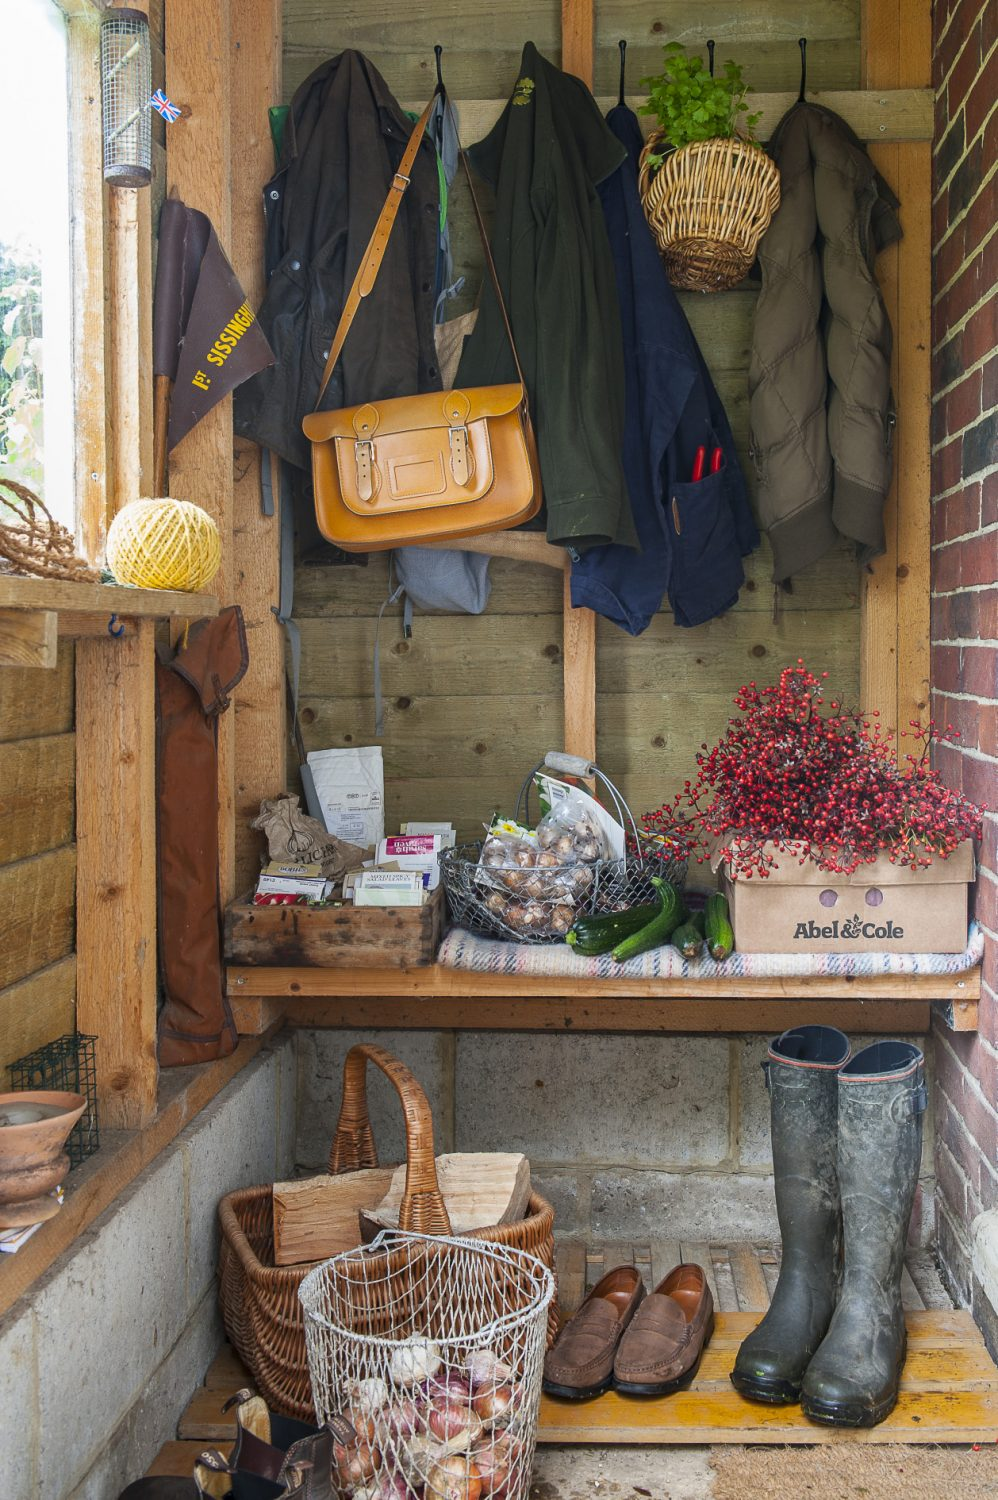 One look in the porch, and it's clear this is the home of a gardener; bulbs, seed packets, vegetables and herbs – and the essential pair of wellies – stand at the ready. A gift of ornamental rose hips from a friend lie ready for use in the house as decoration, and logs are stacked to take in for the fire